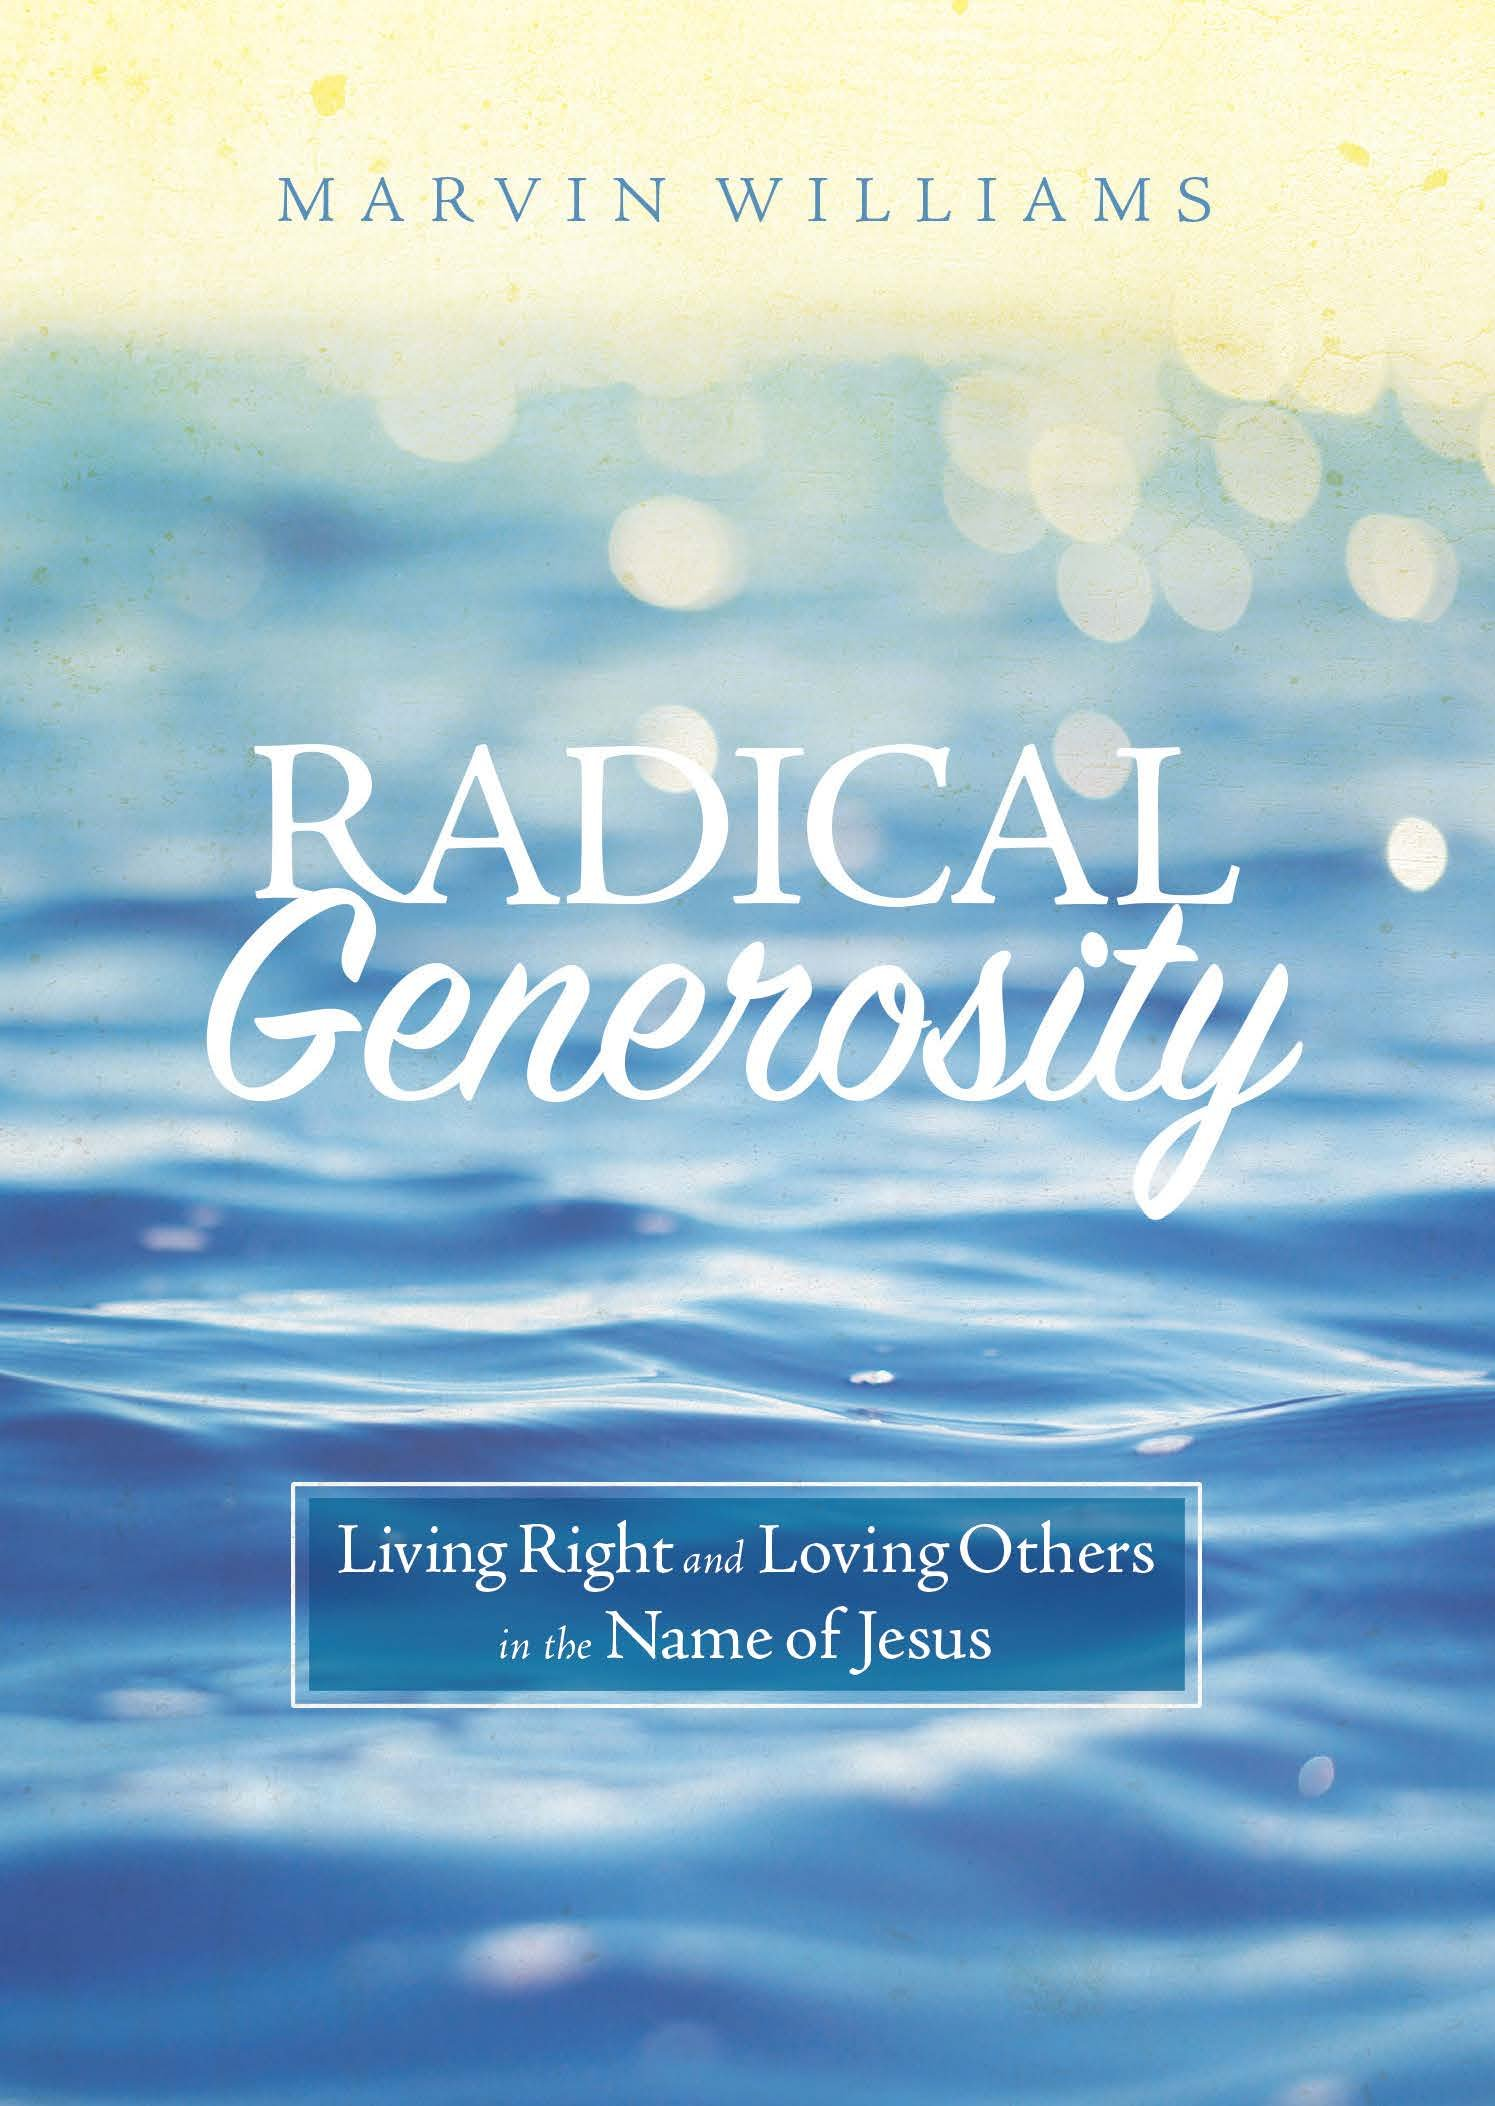 Radical Generosity: Living Right and Loving Others in the Name of Jesus